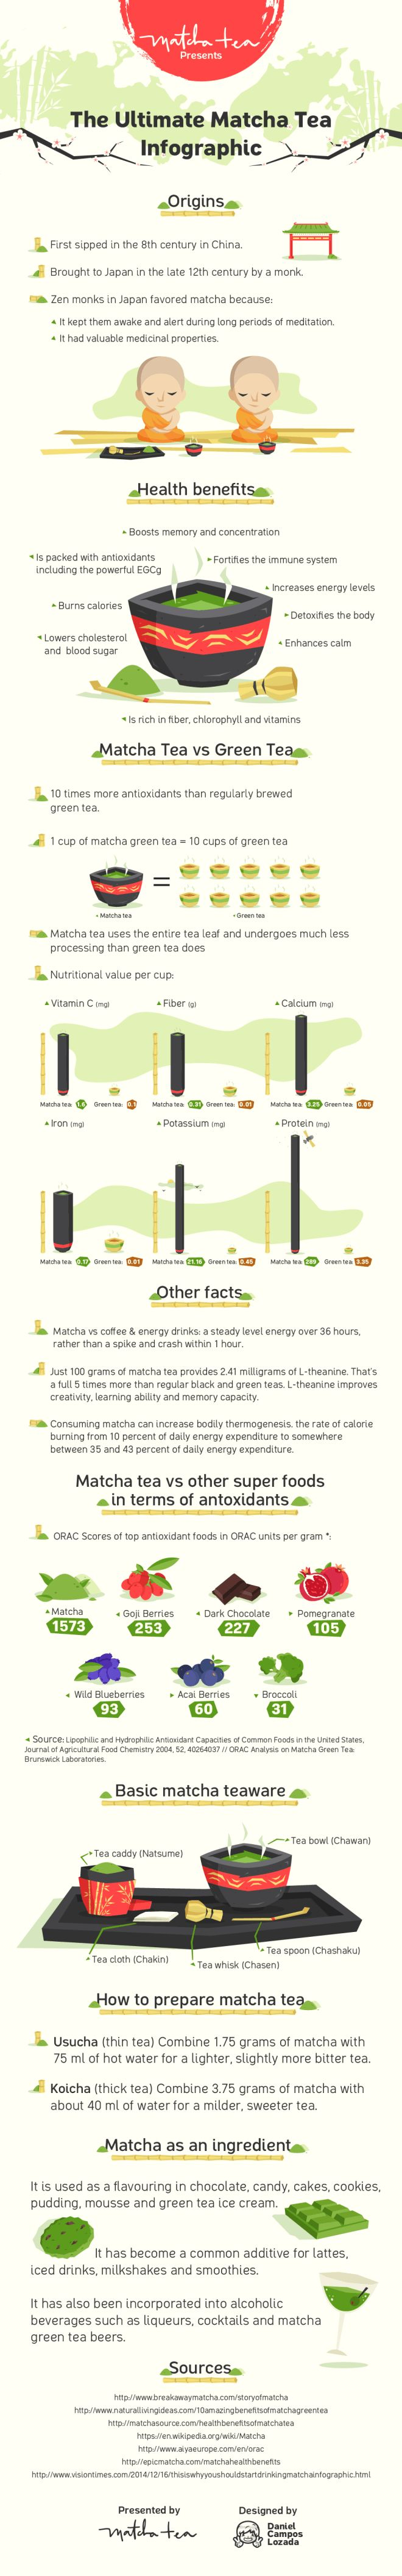 Matcha Tea Infographic (with origins, health benefits, green tea vs, matcha tea, matcha tea vs. other anti-oxidant super foods, and even how to prepare it)!